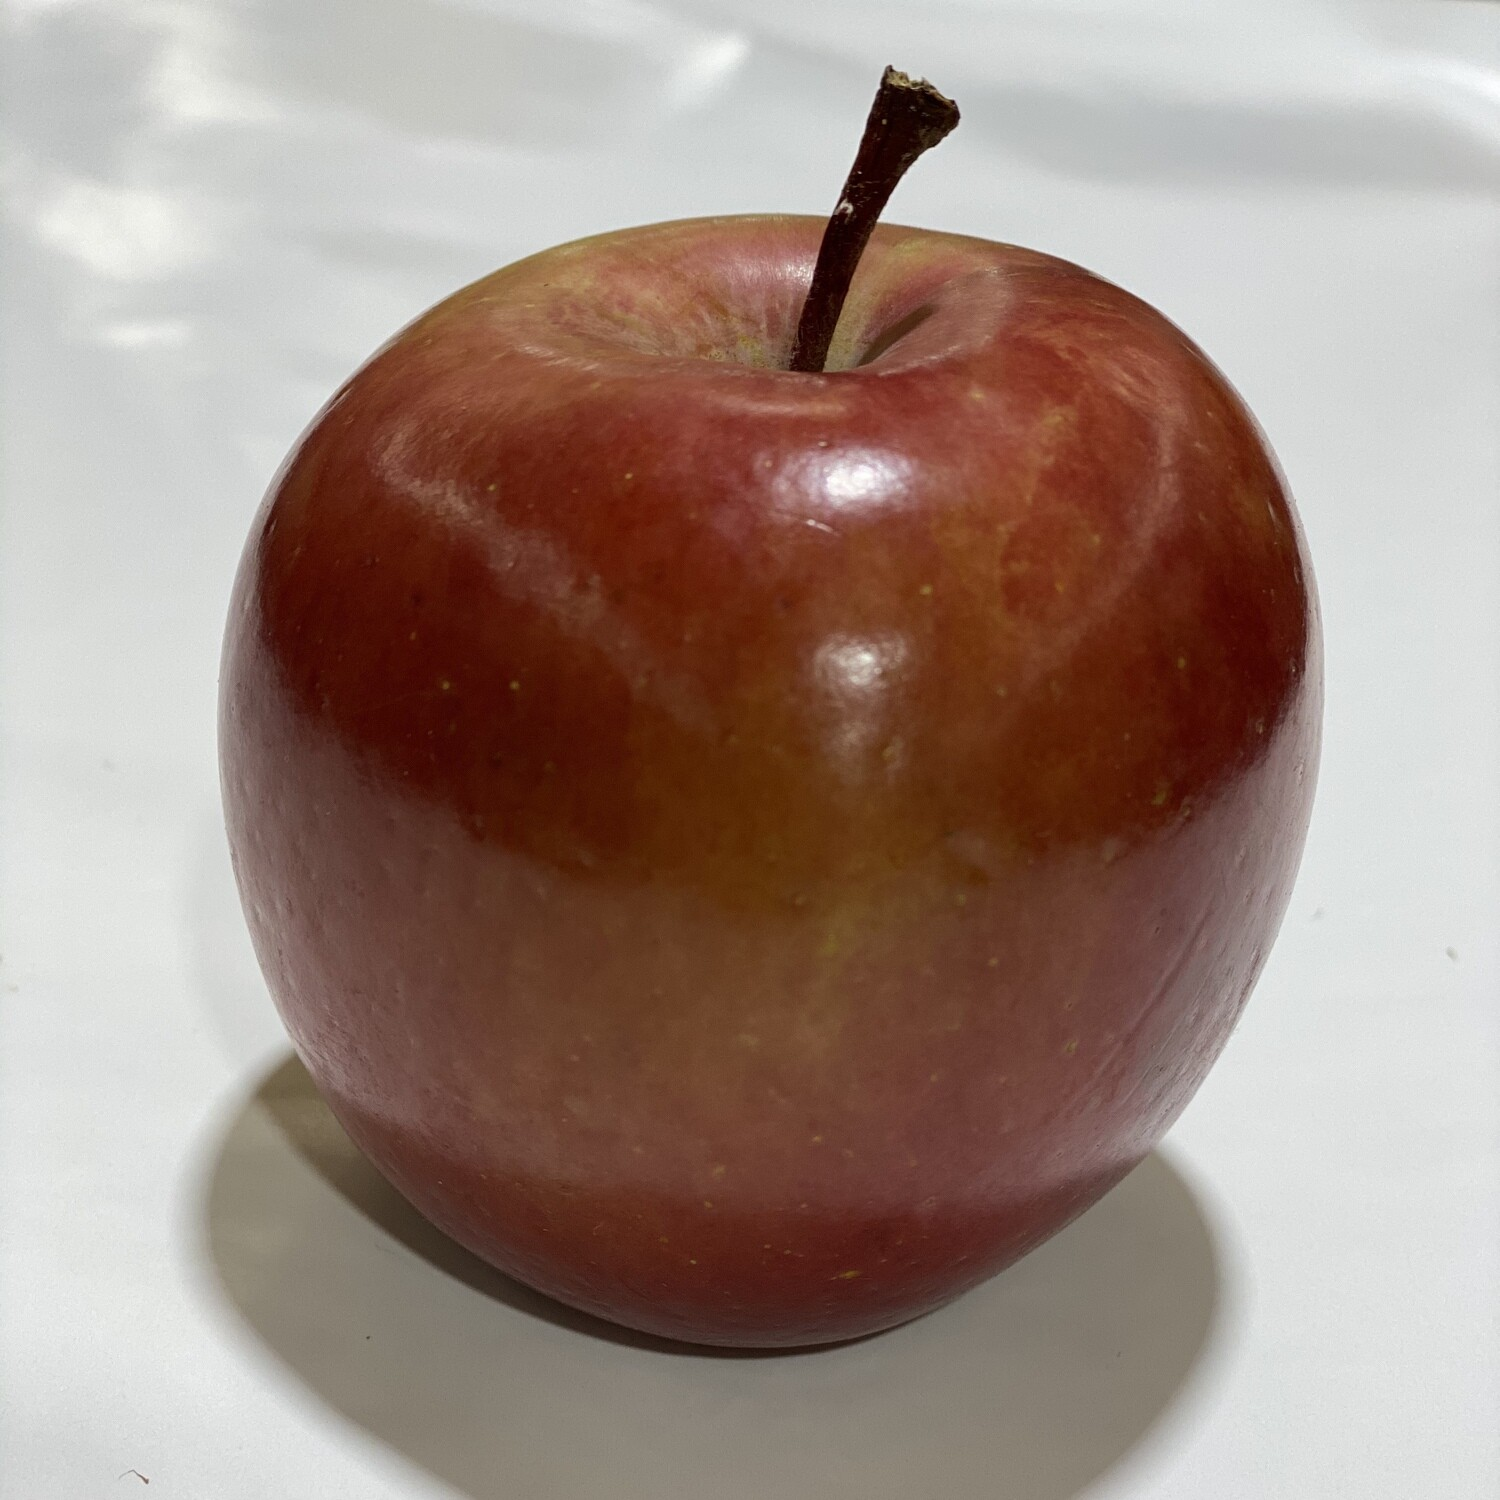 APPLE FUJI (EACH)